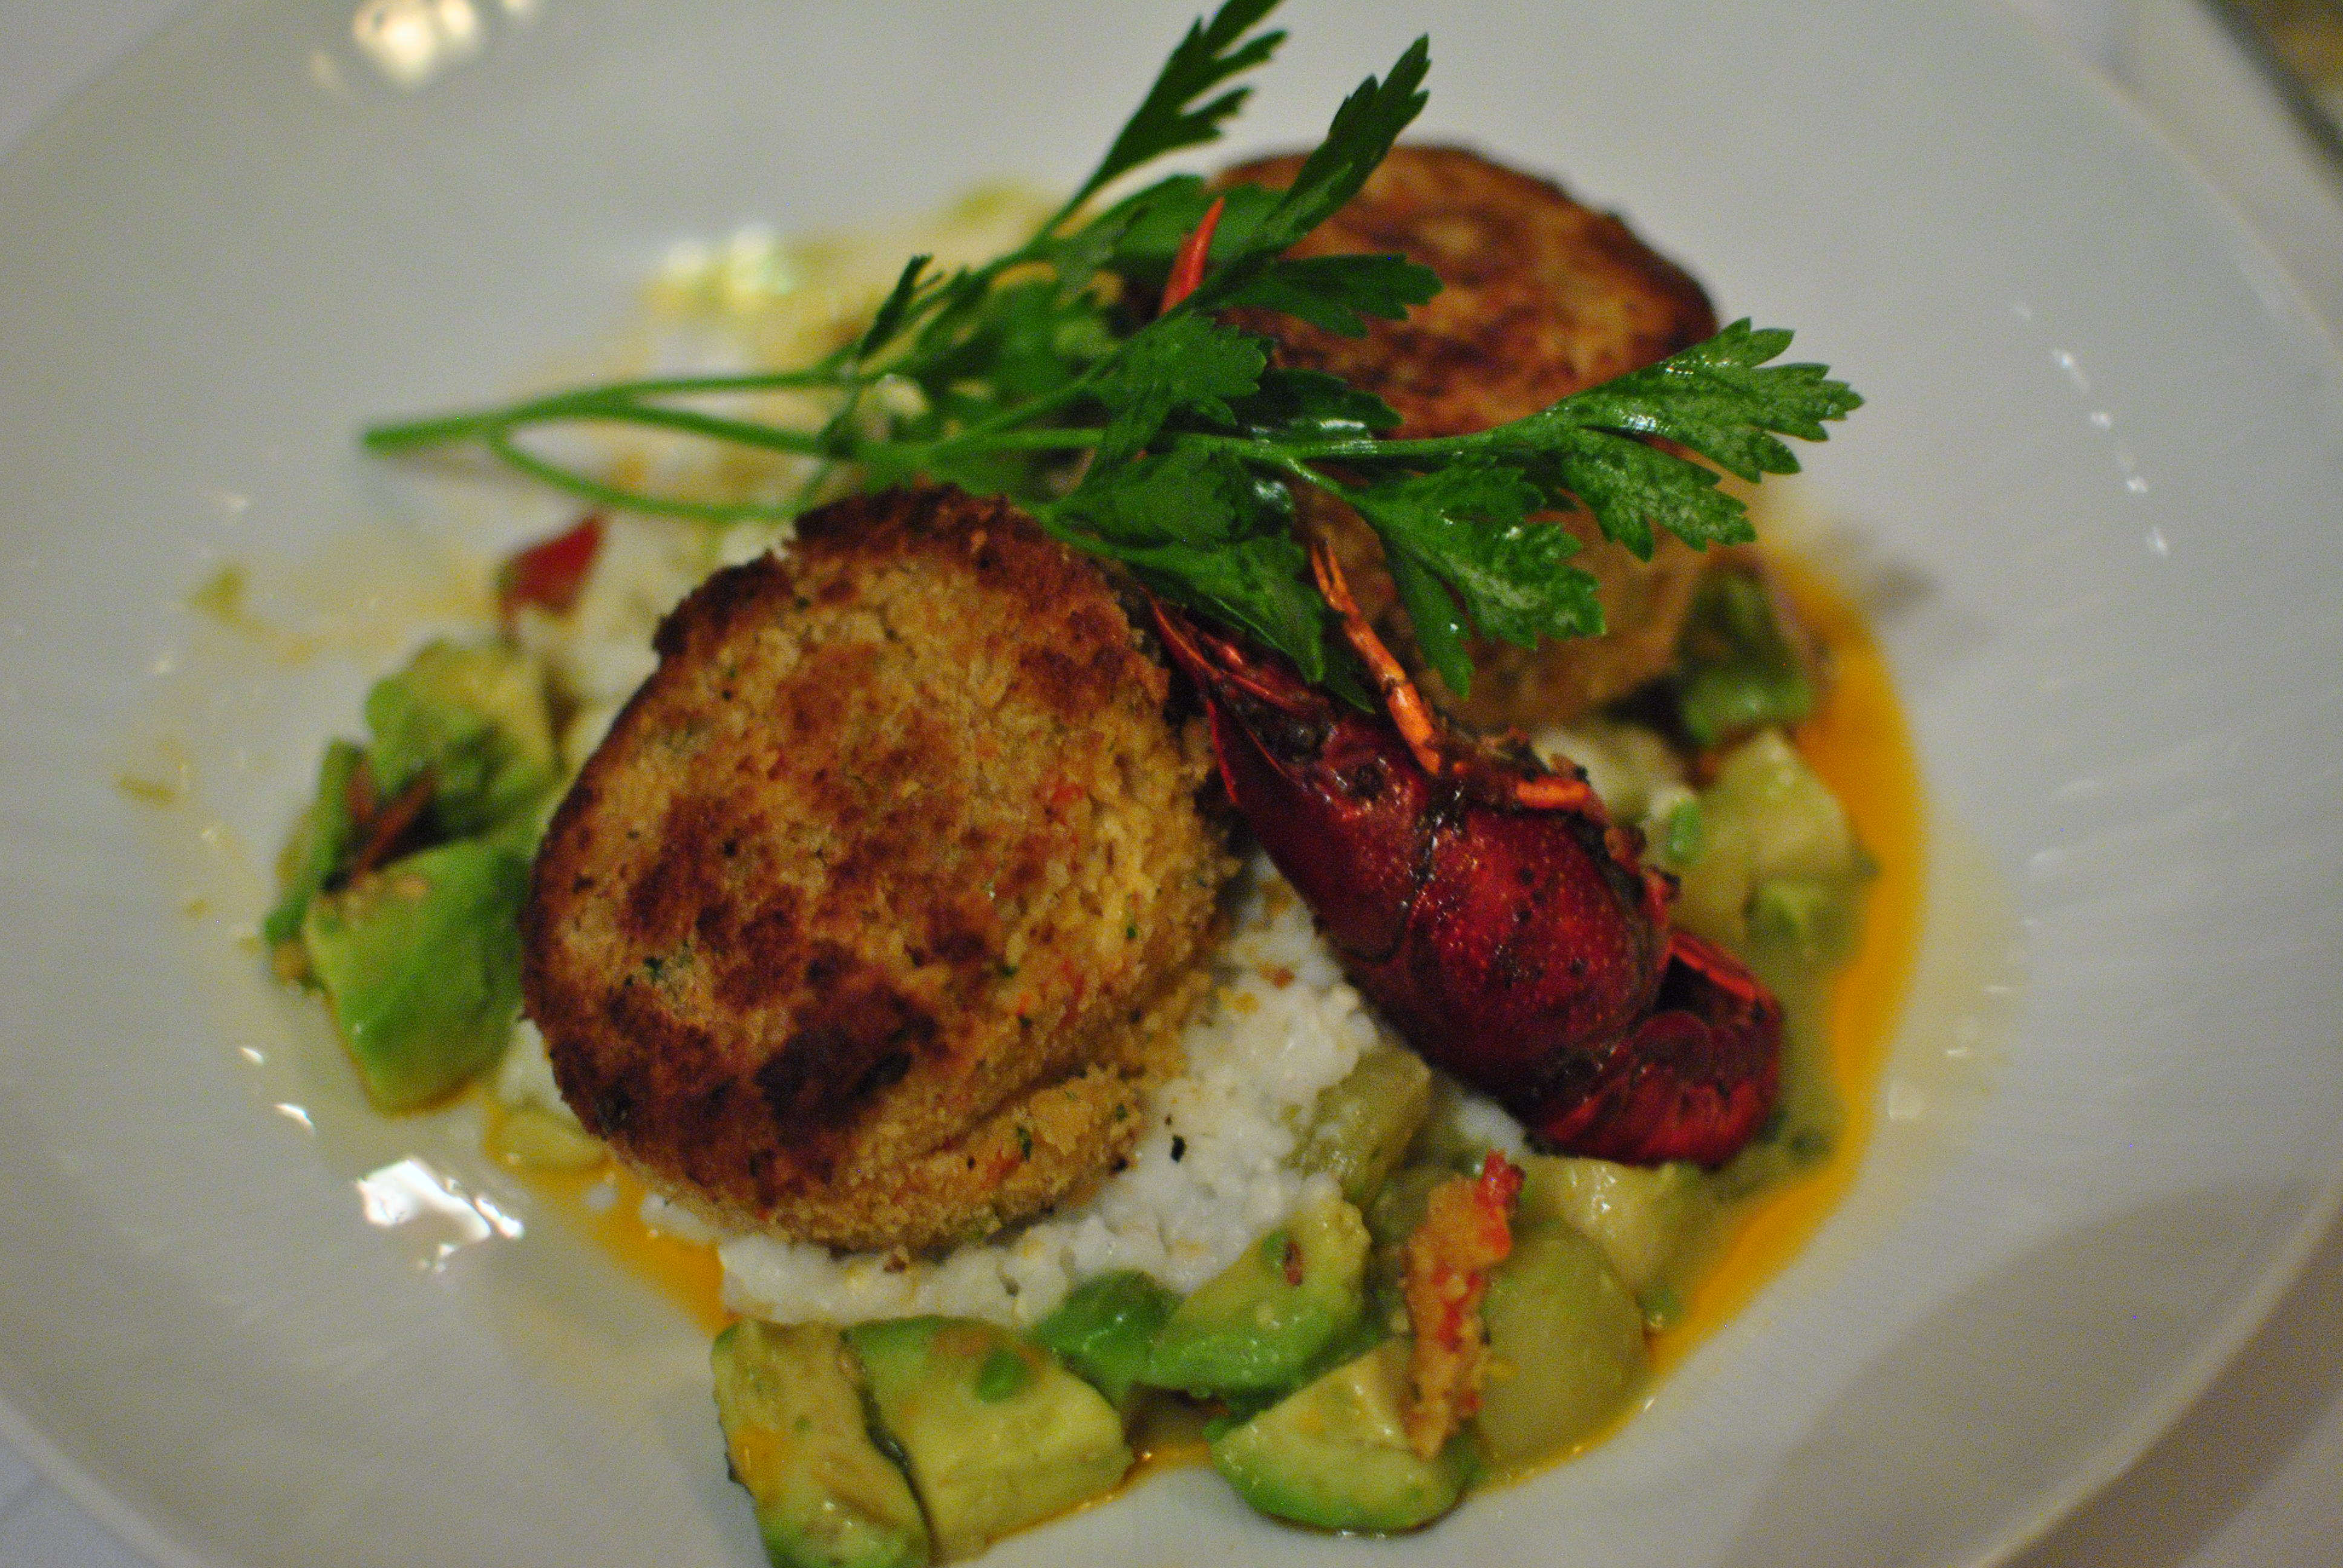 ... tomato, avocado, sweet pepper relish, and creamy stone ground grits